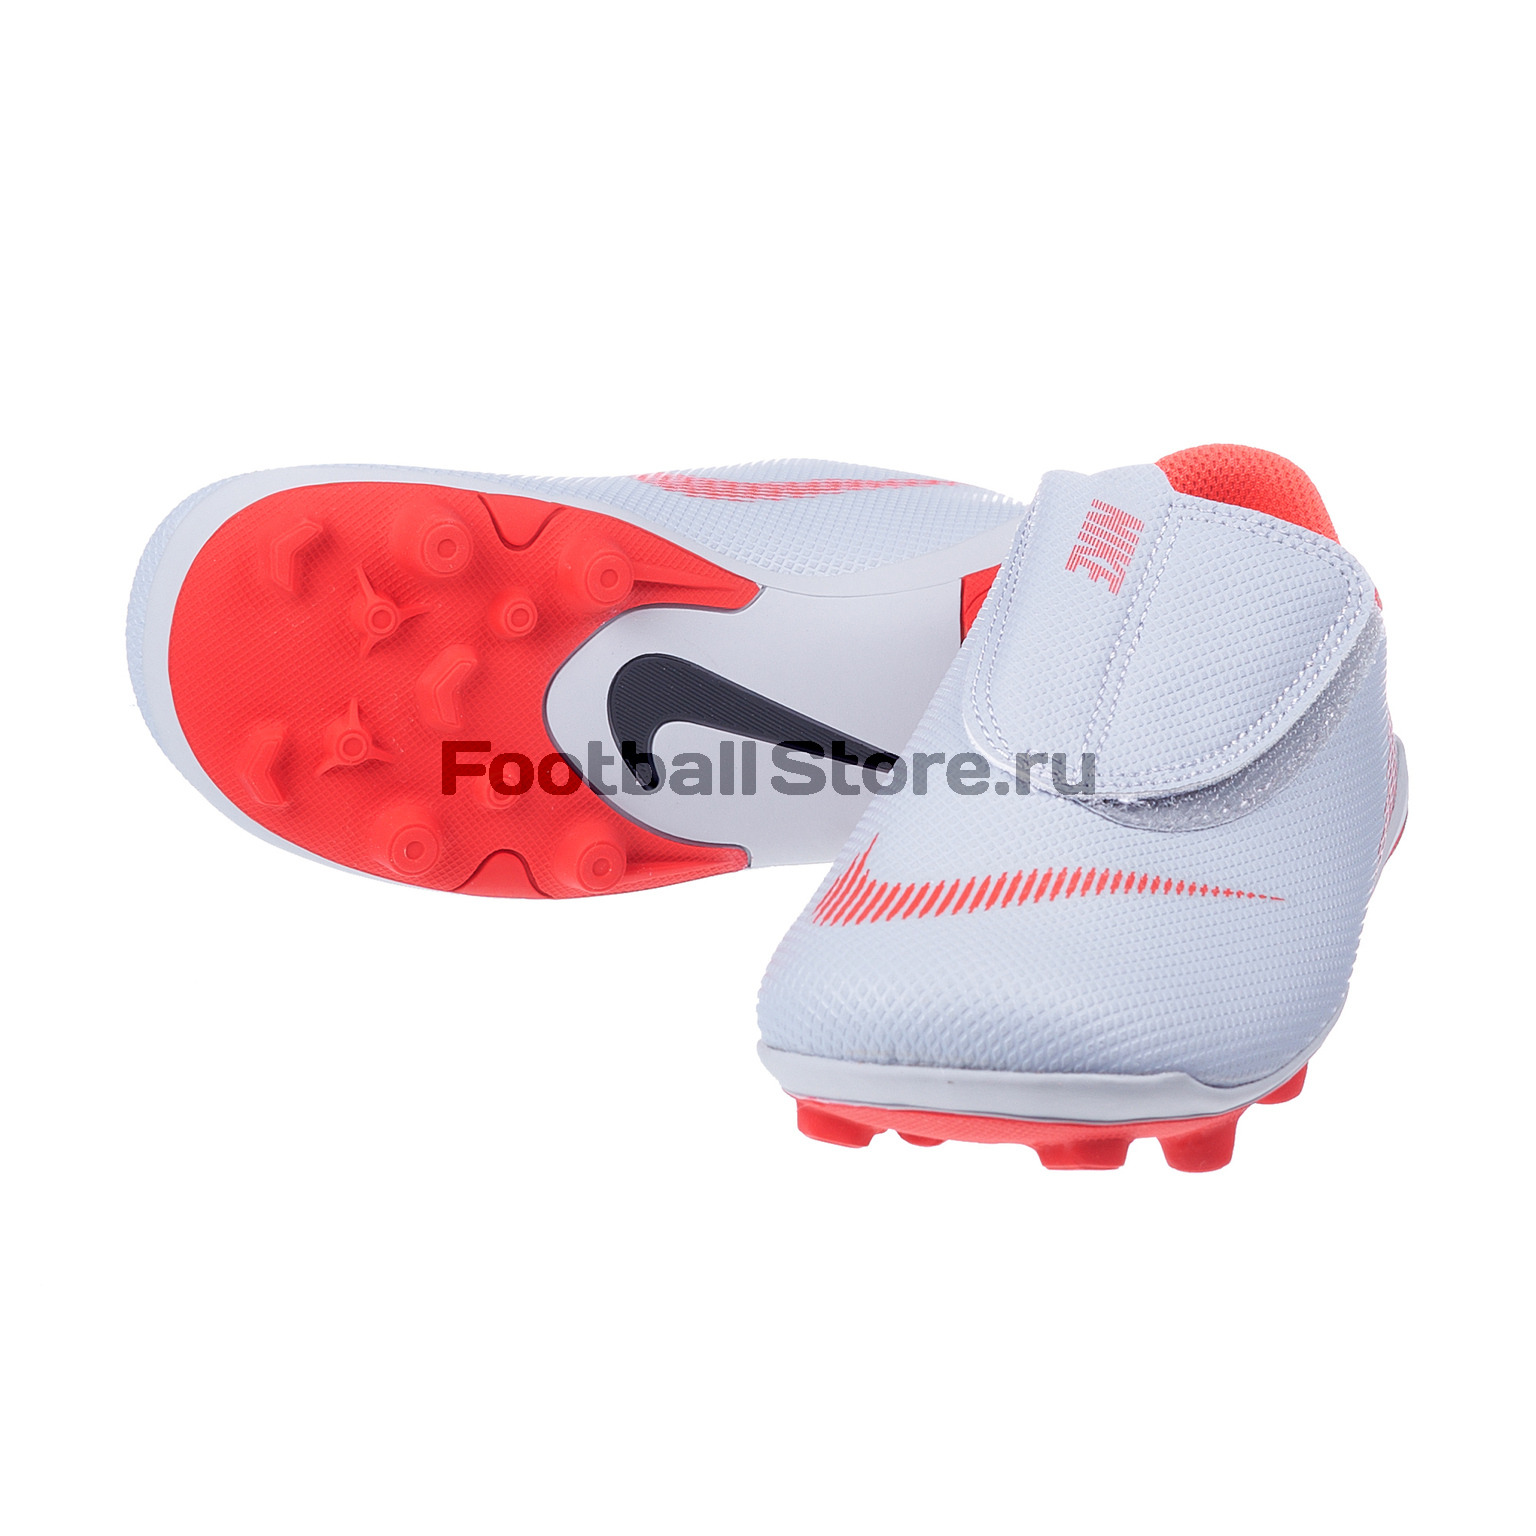 Бутсы детские Nike Vapor 12 Club PS FG/MG AH7351-060 бутсы nike vapor 12 club fg mg ah7378 810